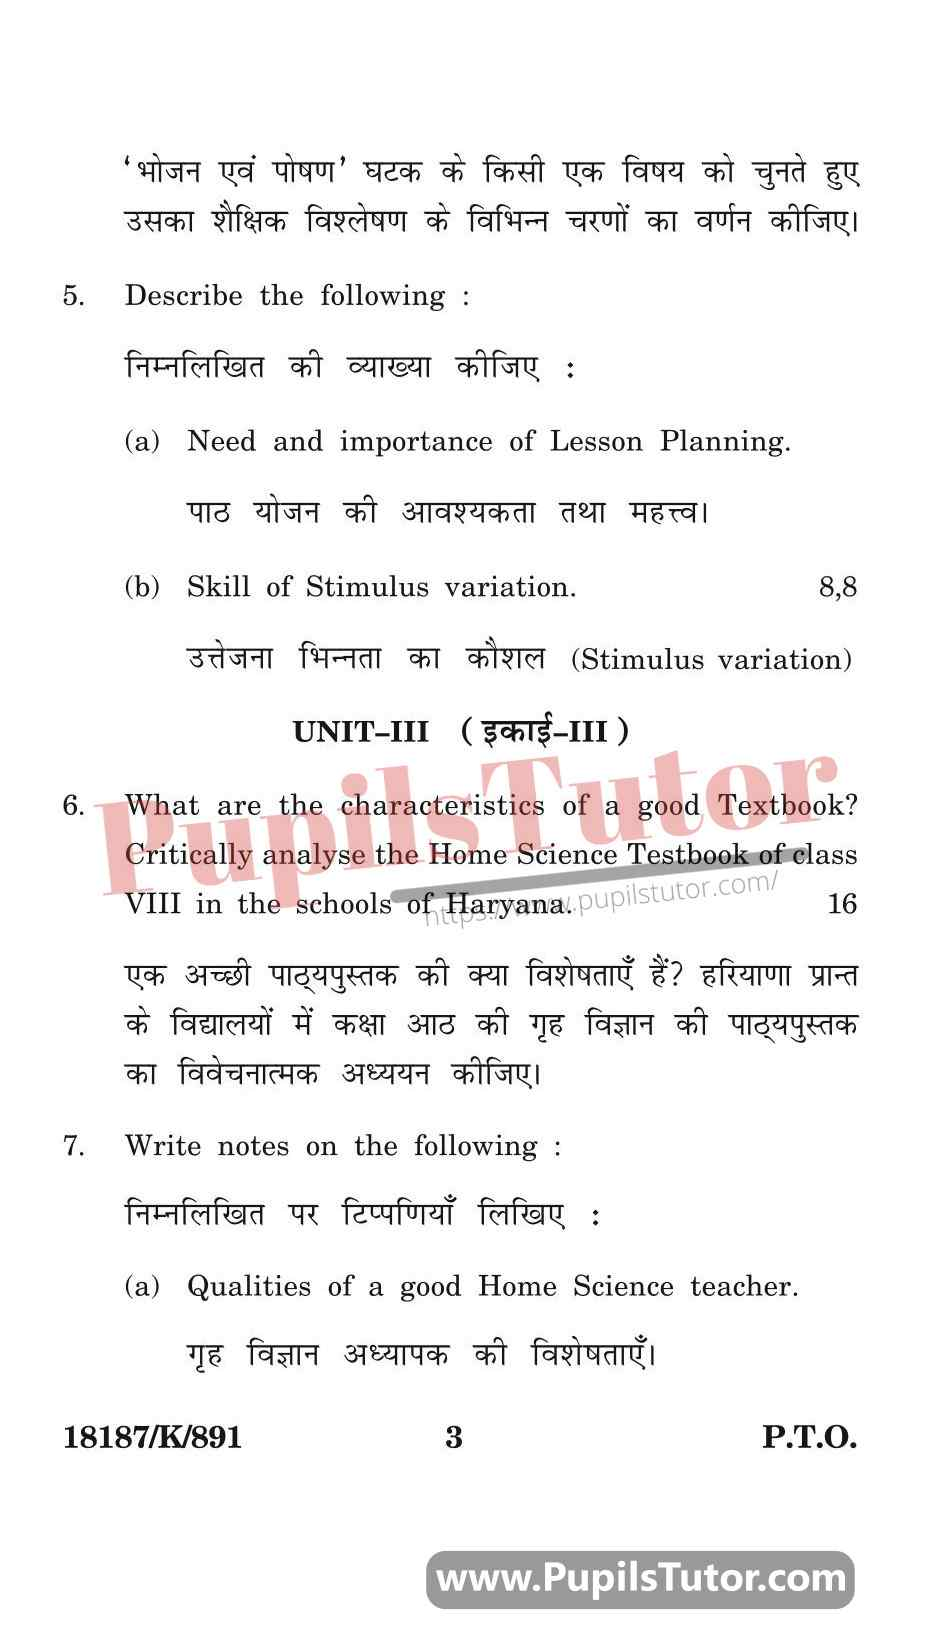 KUK (Kurukshetra University, Haryana) Pedagogy Of Home Science Question Paper 2020 For B.Ed 1st And 2nd Year And All The 4 Semesters In English And Hindi Medium Free Download PDF - Page 3 - pupilstutor